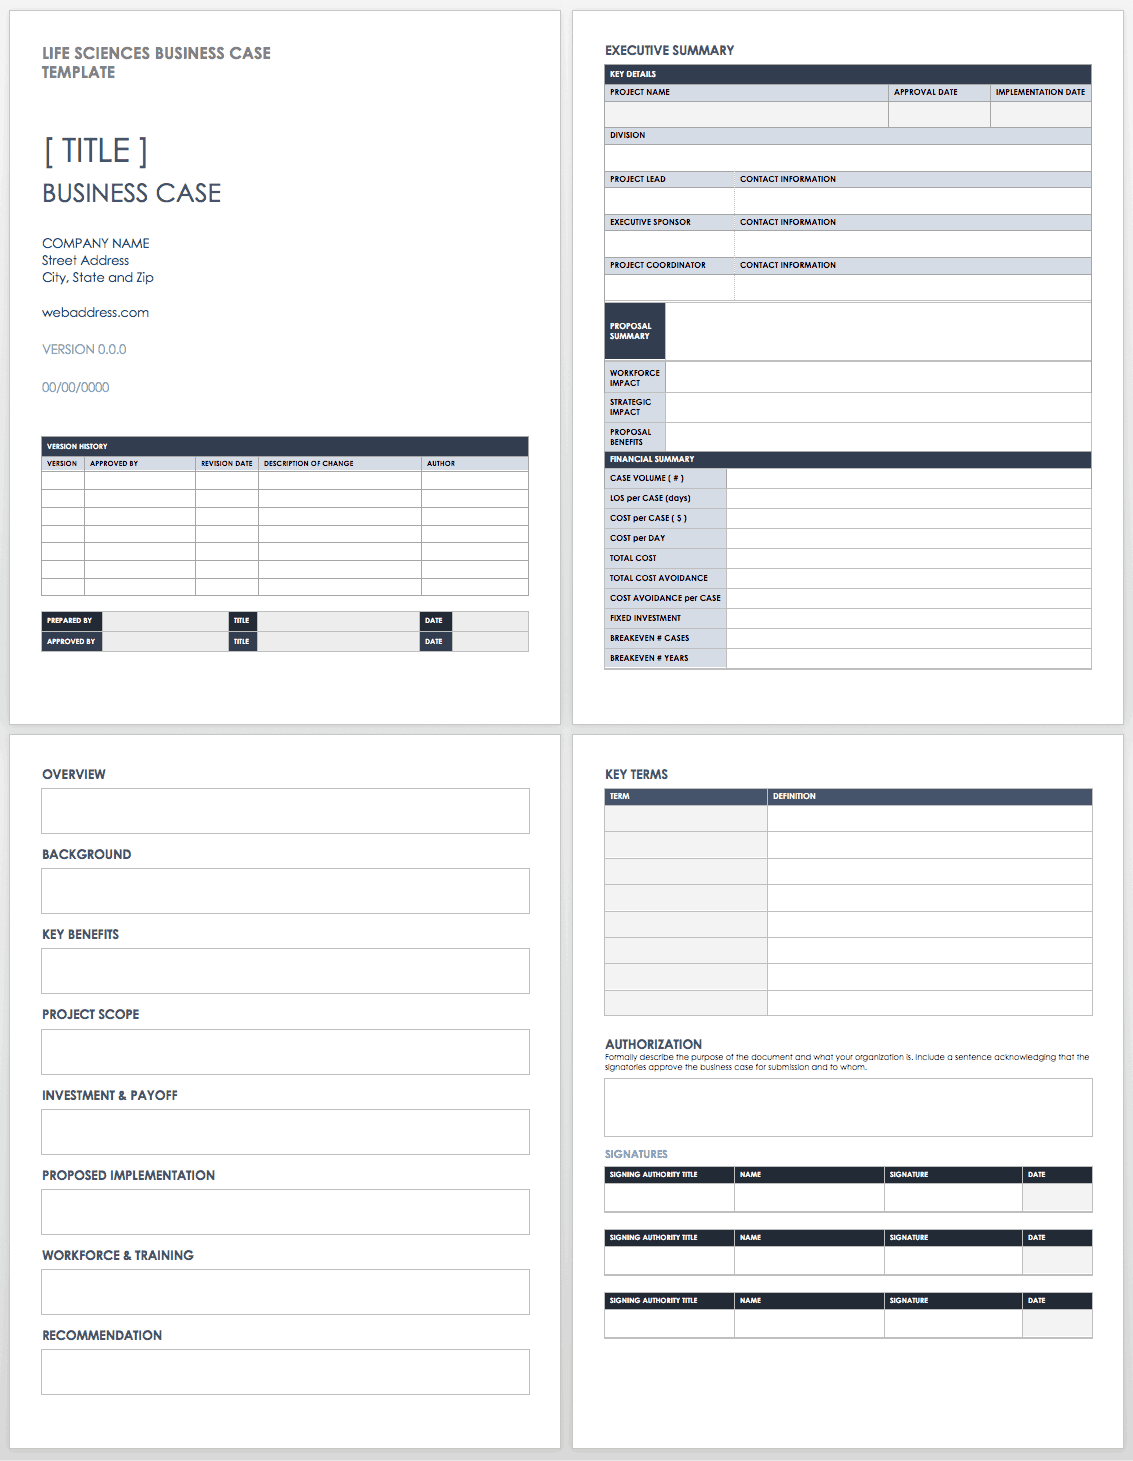 Free business case templates smartsheet life sciences business case cheaphphosting Image collections